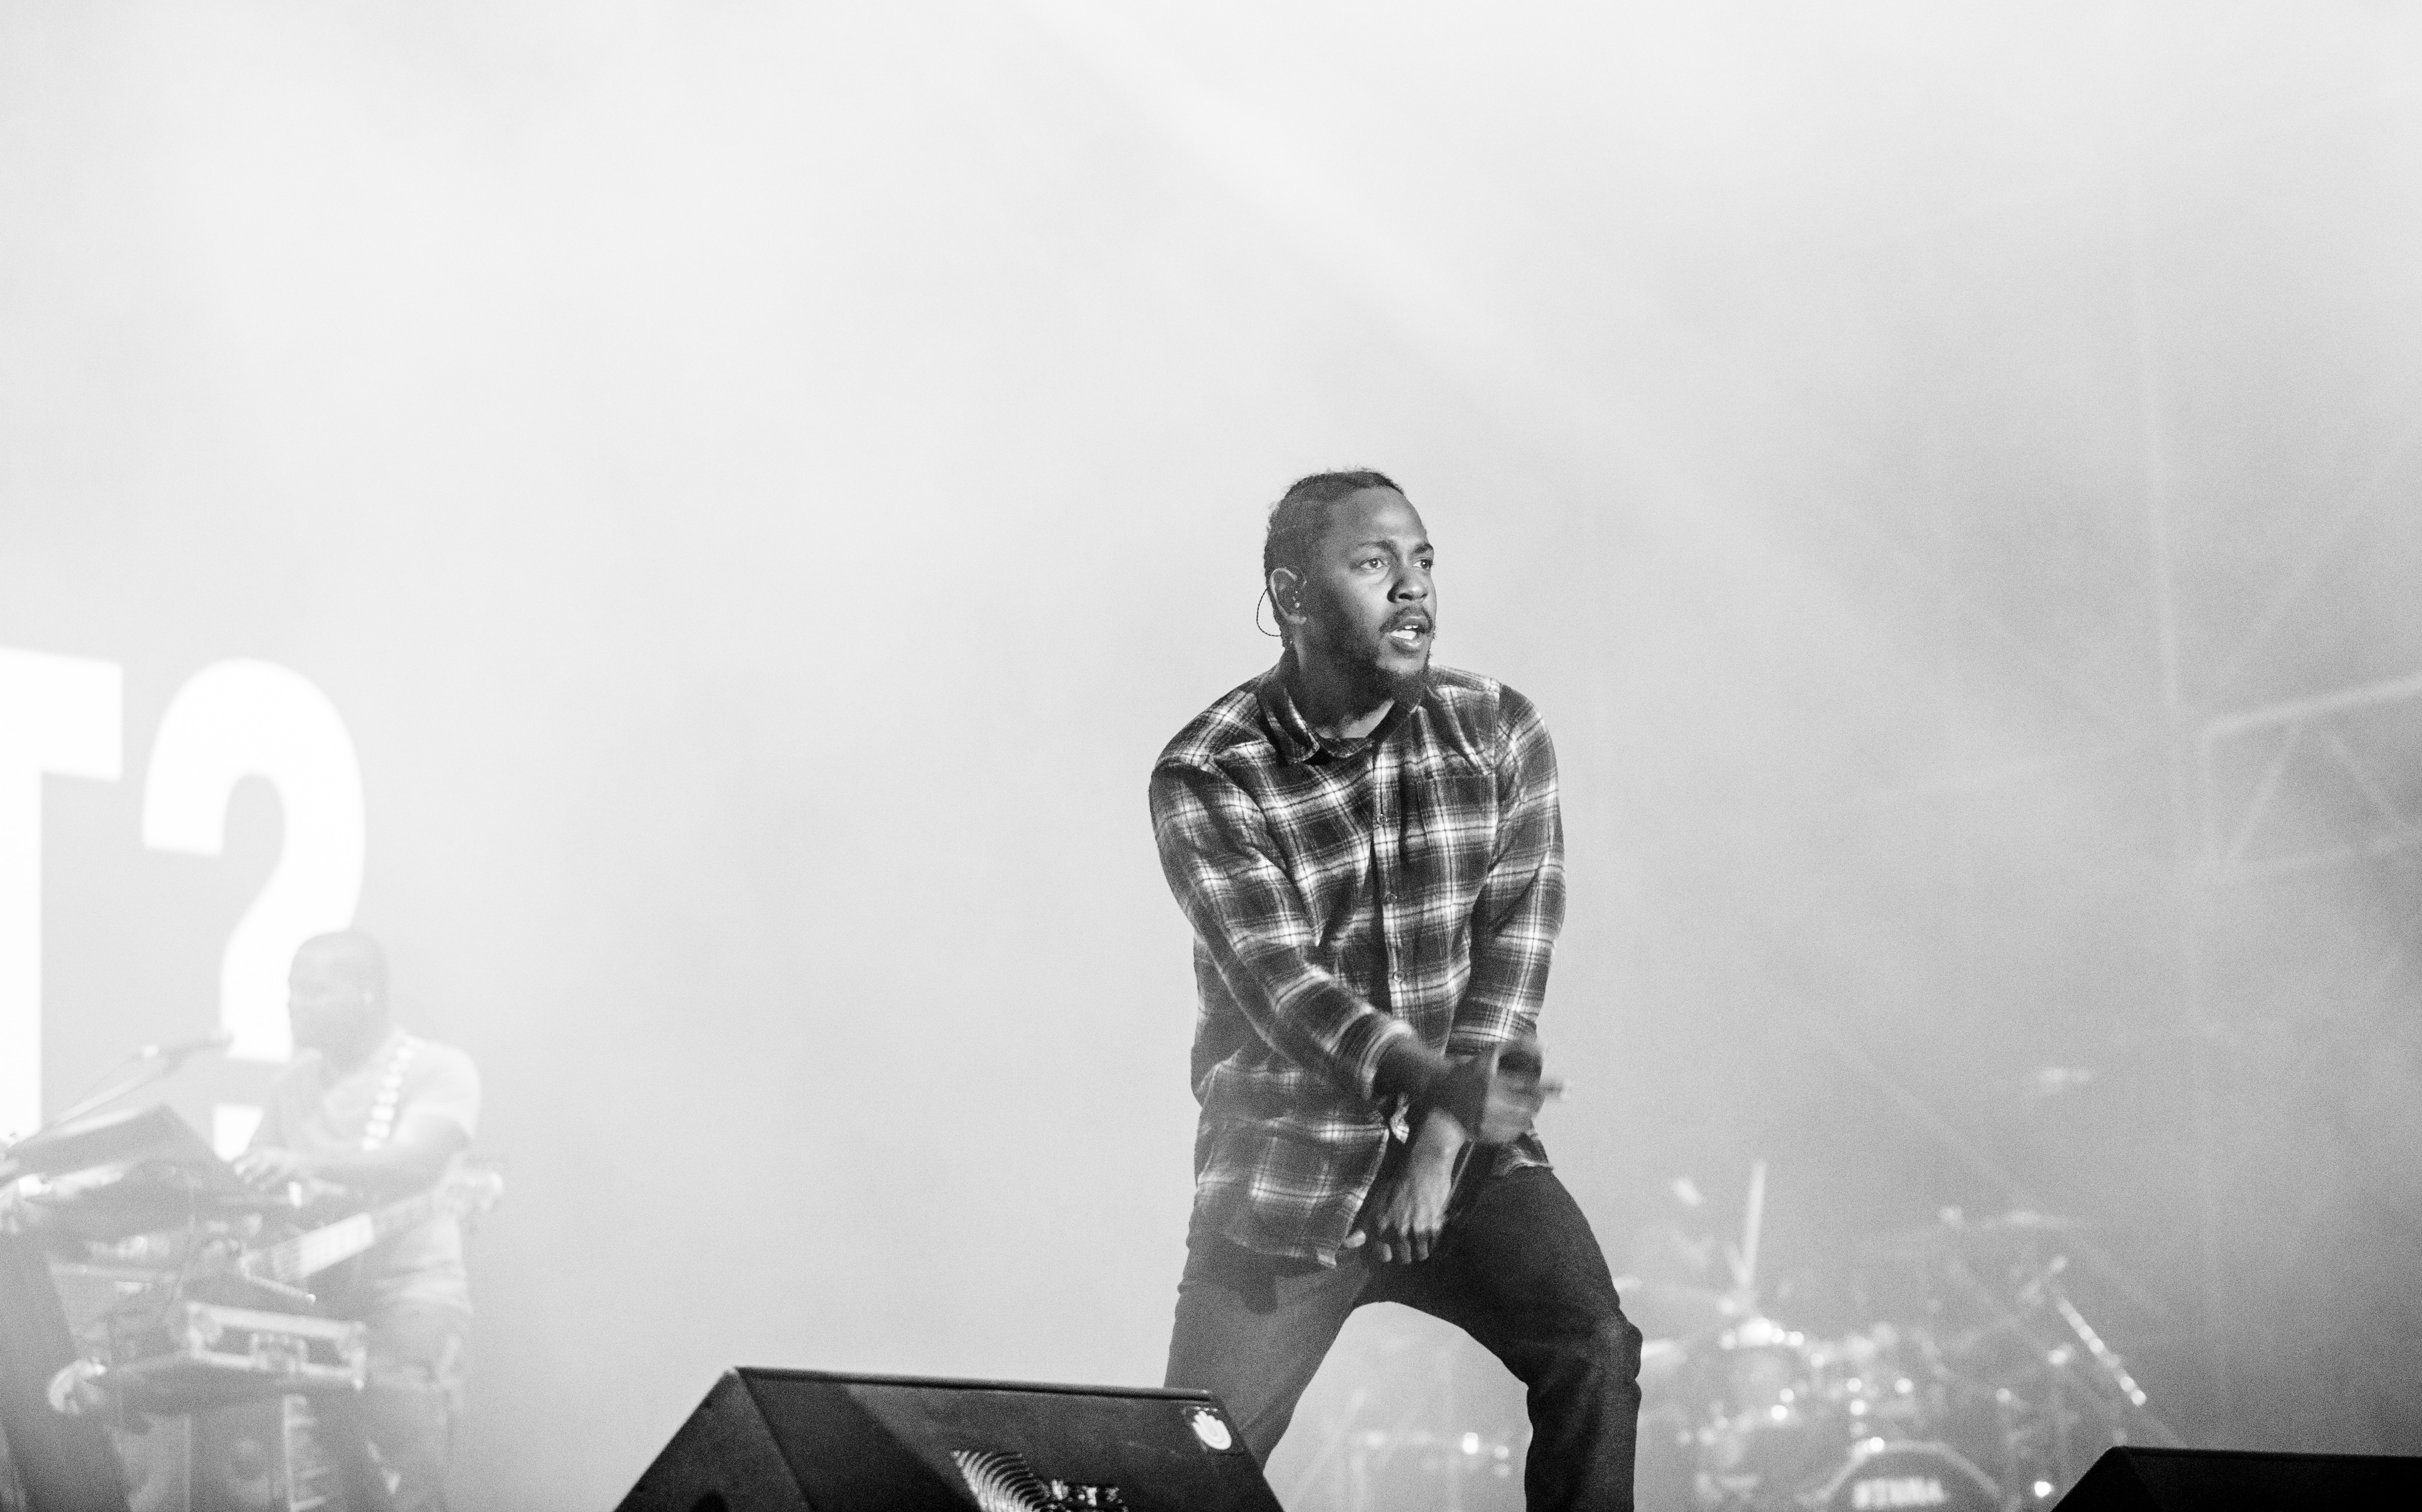 Hip hop is the most popular music genre in 2018